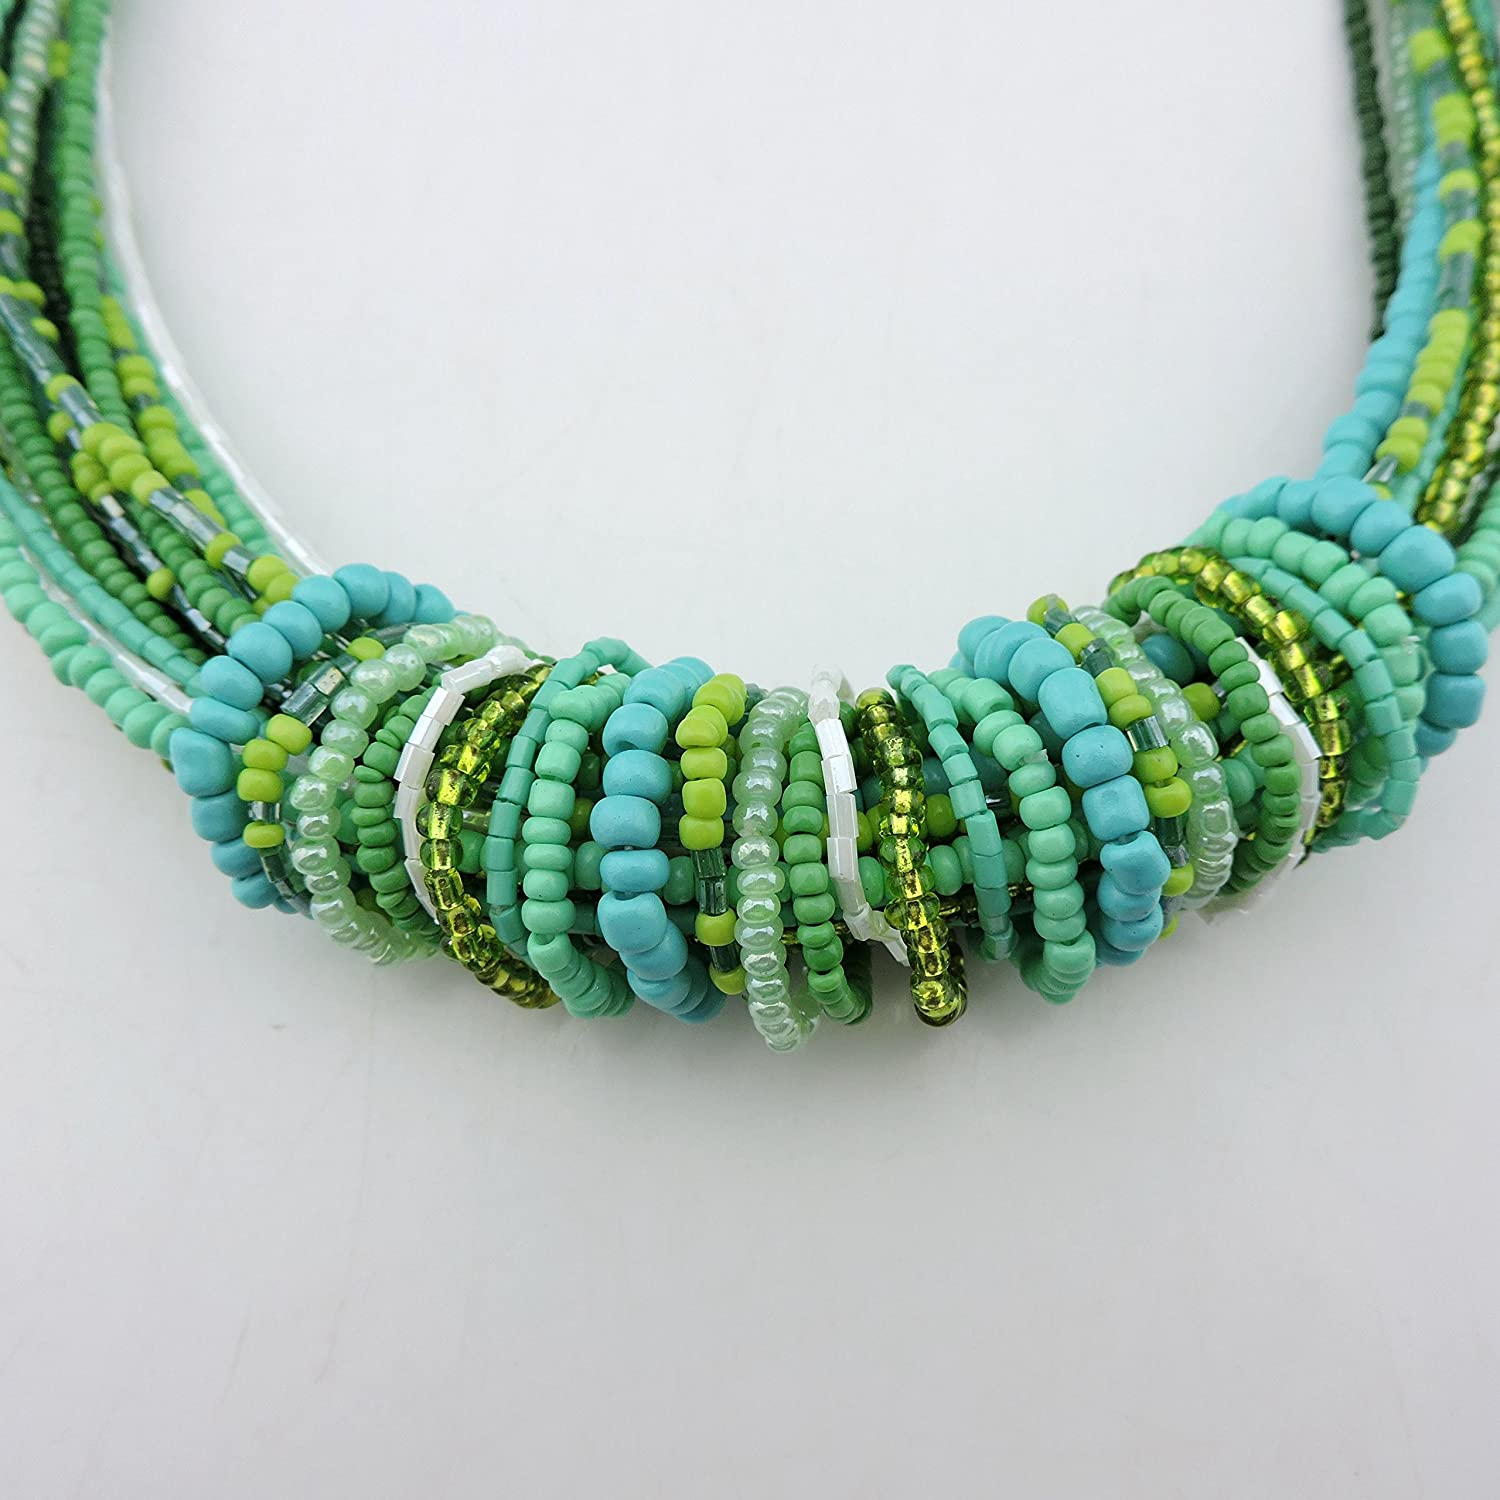 NK-10314 Bocar Chunky Statement Colorful Seed Beads Women Choker Collar Necklace